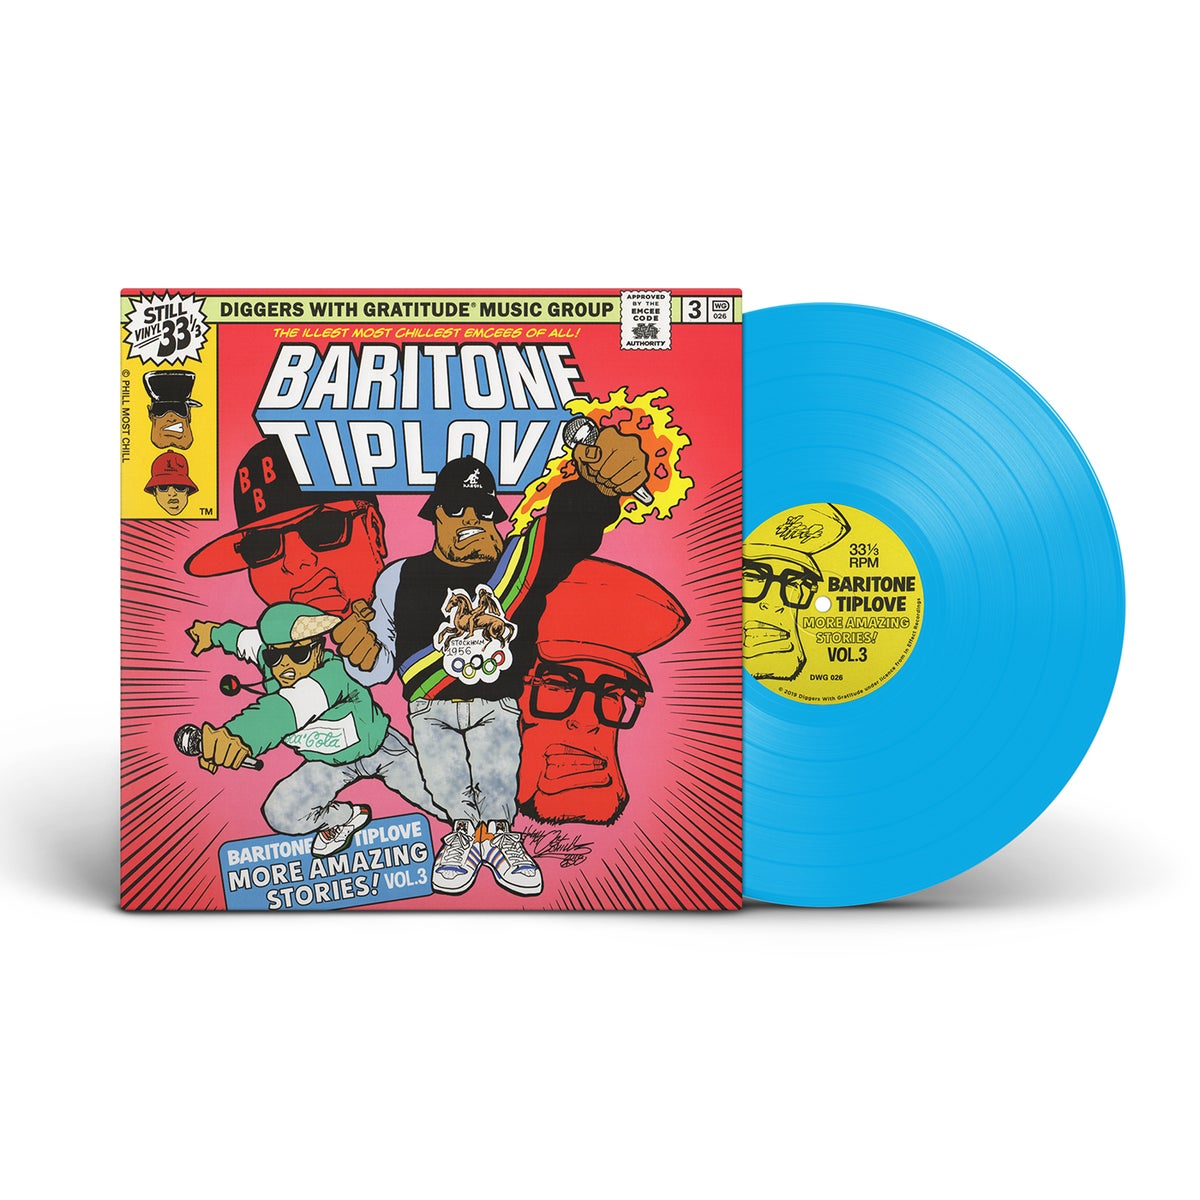 "Image of Baritone Tiplove - More Amazing Stories! Vol. 3 - DWG exclusive 180g blue vinyl and 7"" BUNDLE"